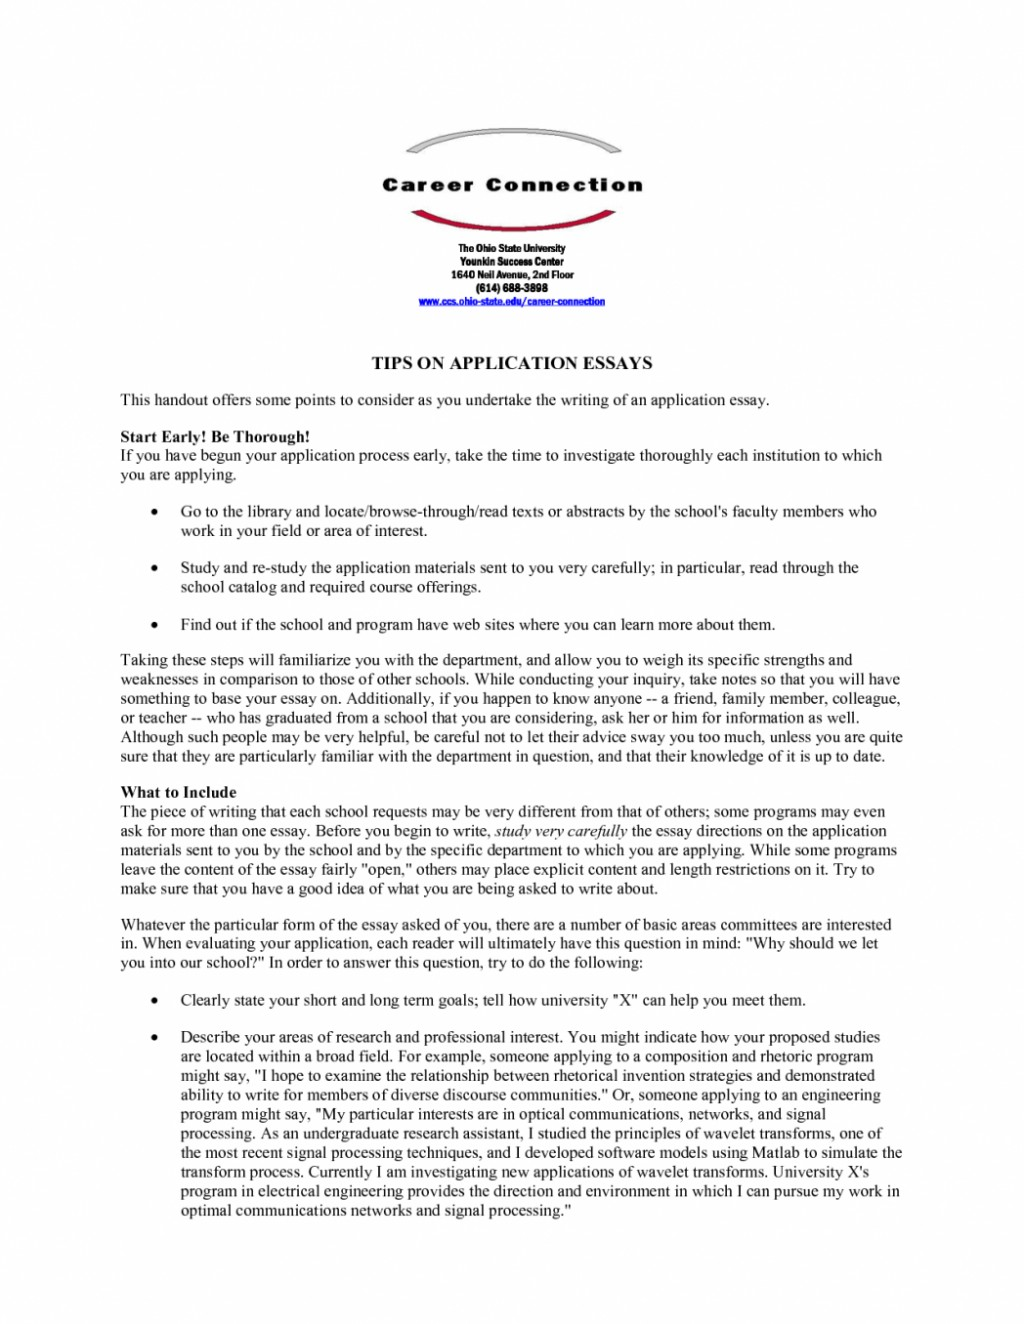 011 Fsu Essay Prompt Example Samples University Application Examples Sample Gb6xr Florida State Unique Care Program Large